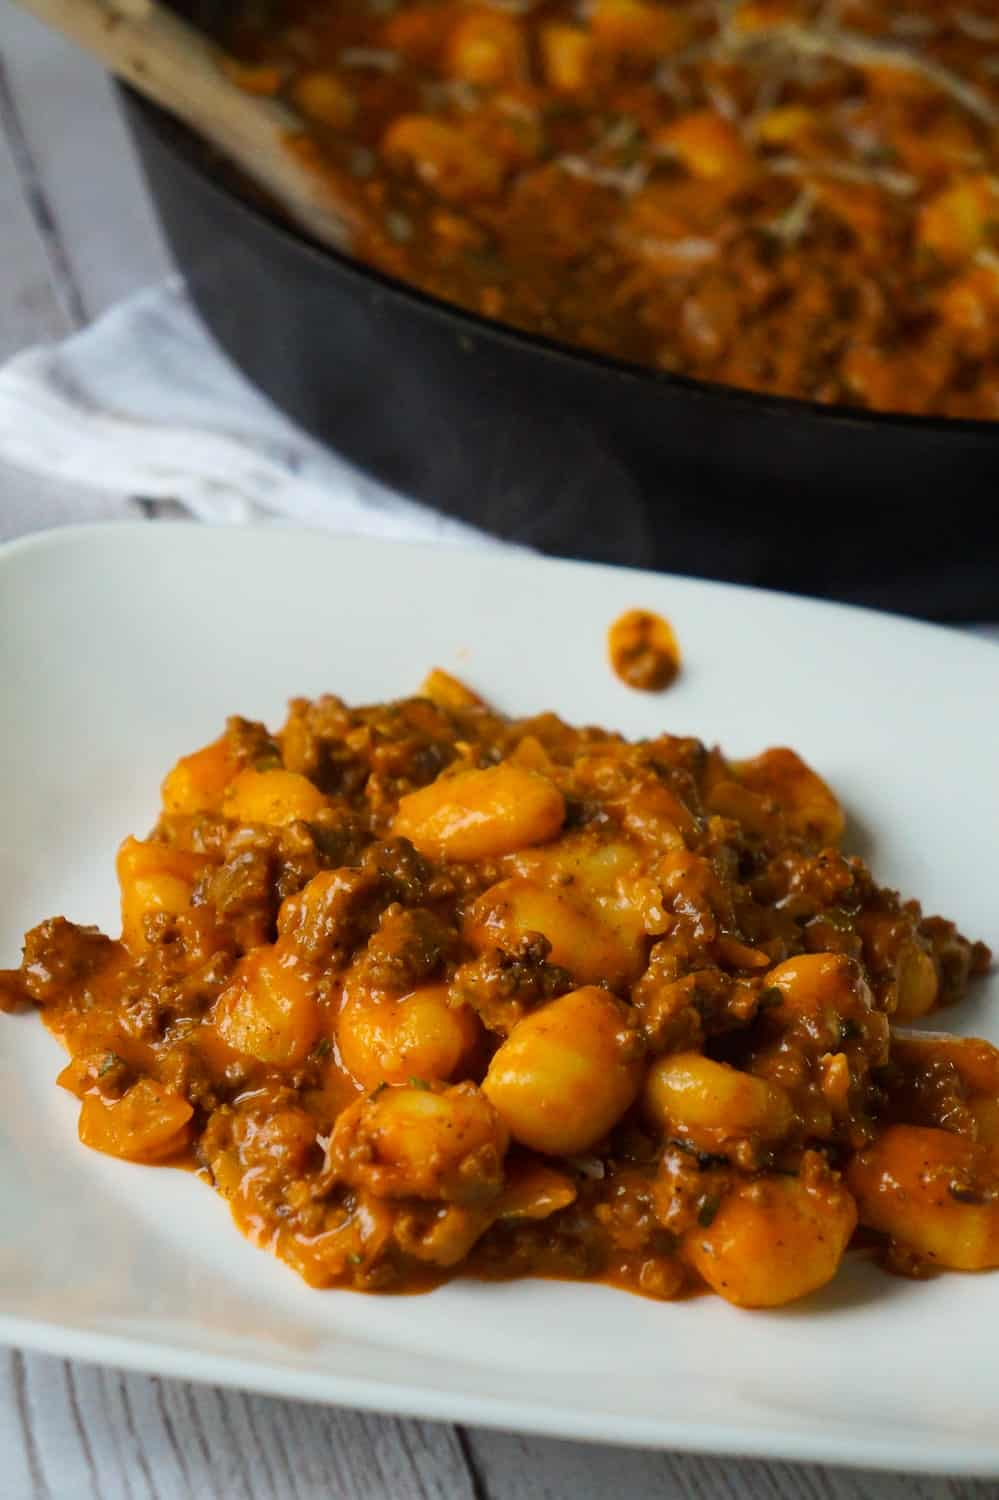 Gnocchi and Ground Beef with Tomato Sauce is an easy weeknight dinner recipe that takes less than 30 minutes from start to finish. These delicious mini potato dumpling are tossed in a sauce made from condensed tomato soup, along with some ground beef and real bacon bits.